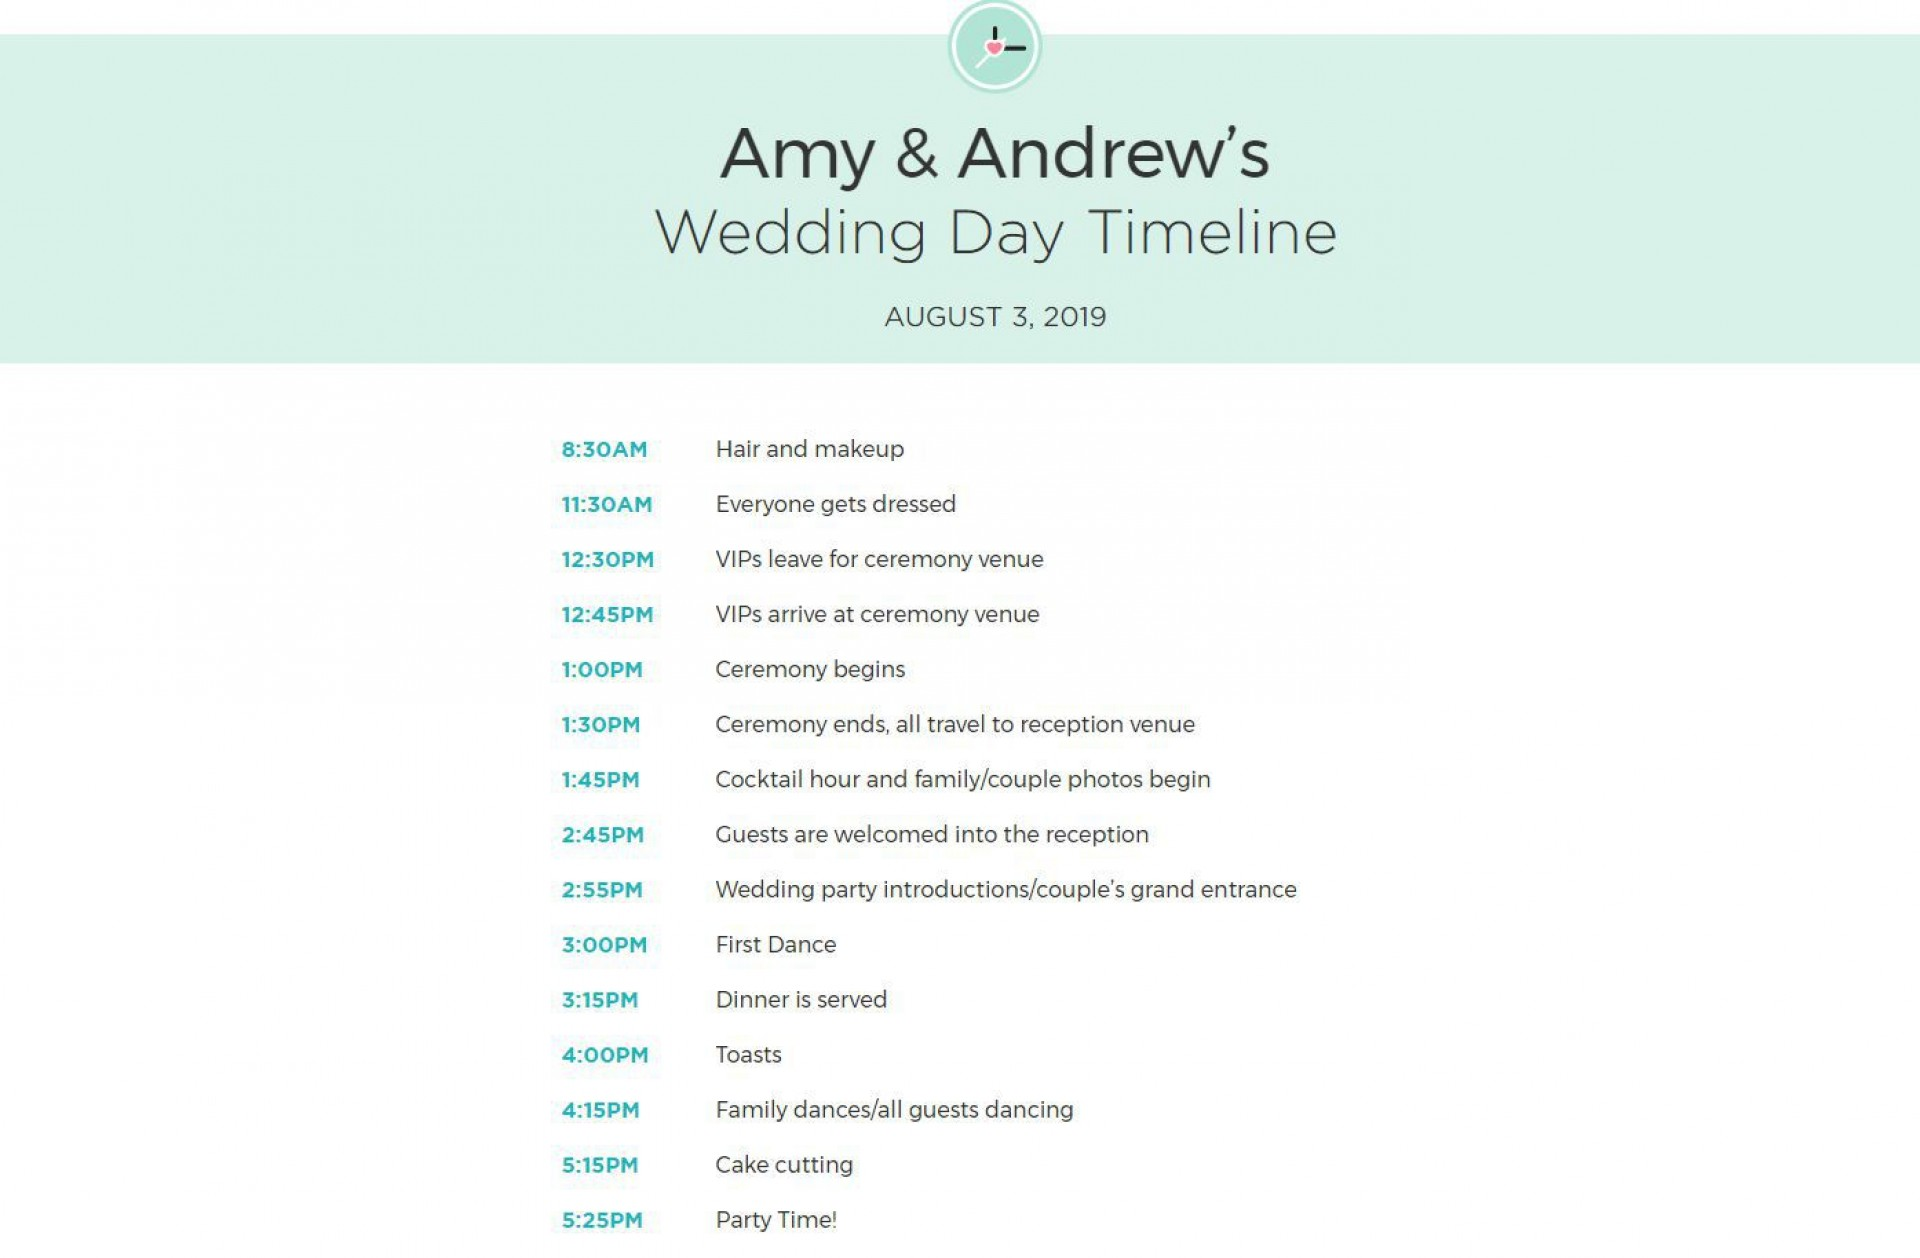 009 Formidable Wedding Day Itinerary Template Design  Sample Excel Word1920